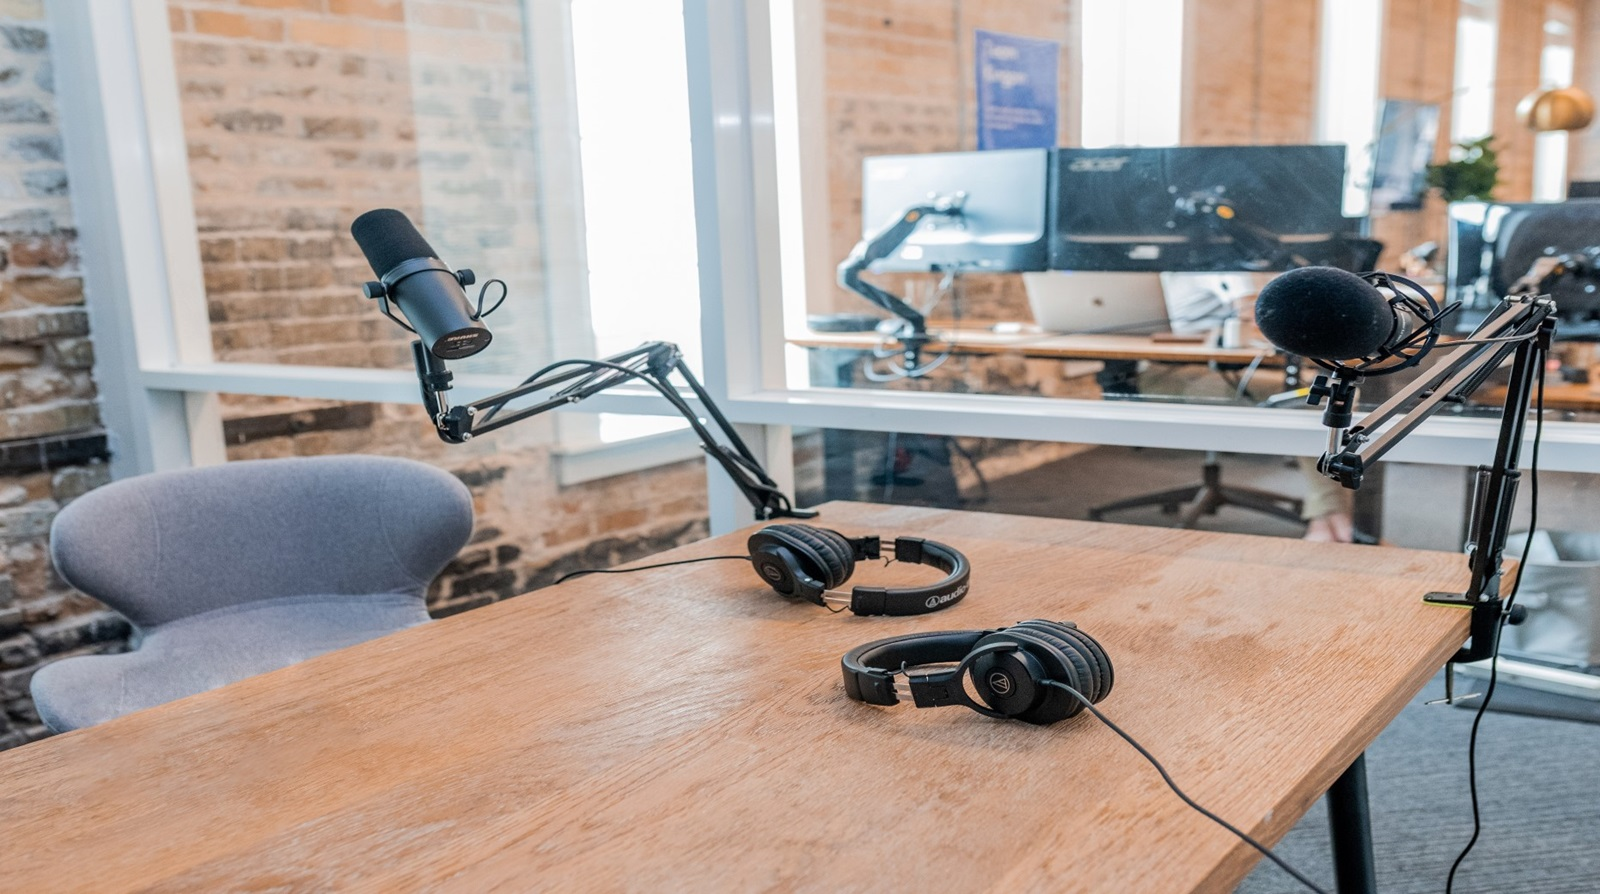 Headphones on a table in a newsroom